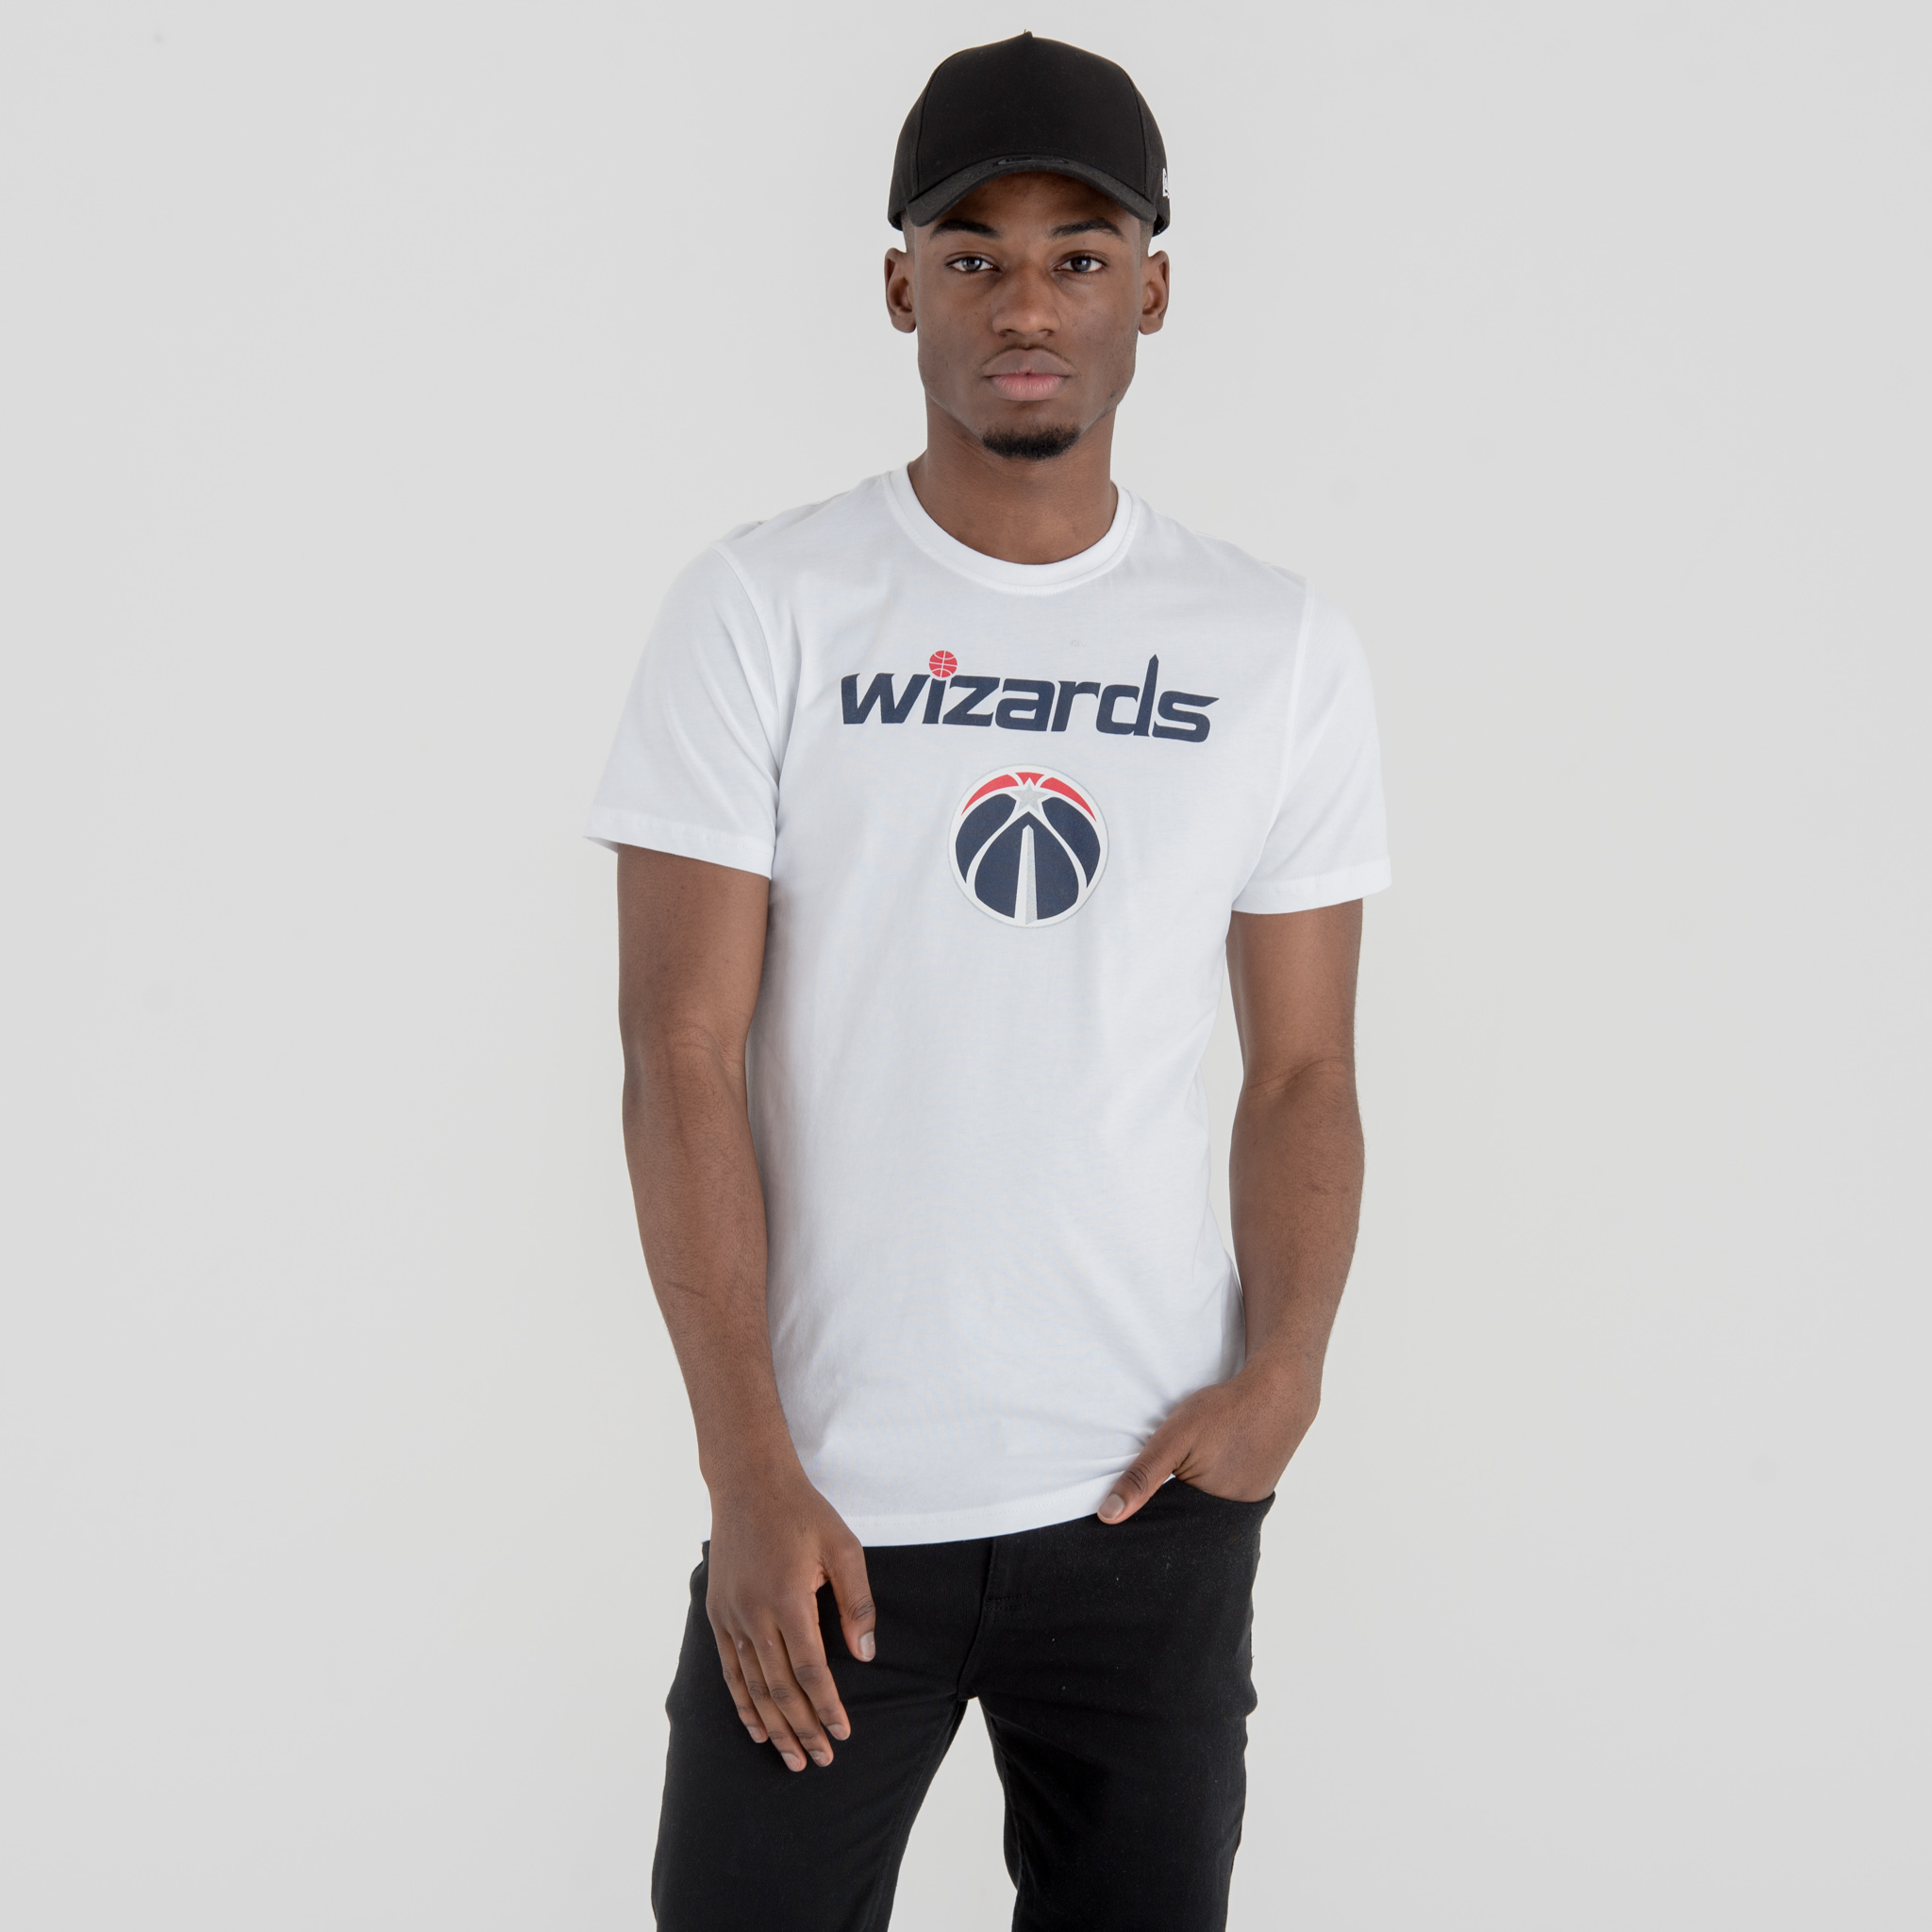 Washington Wizards – Weißes T-Shirt mit Teamlogo